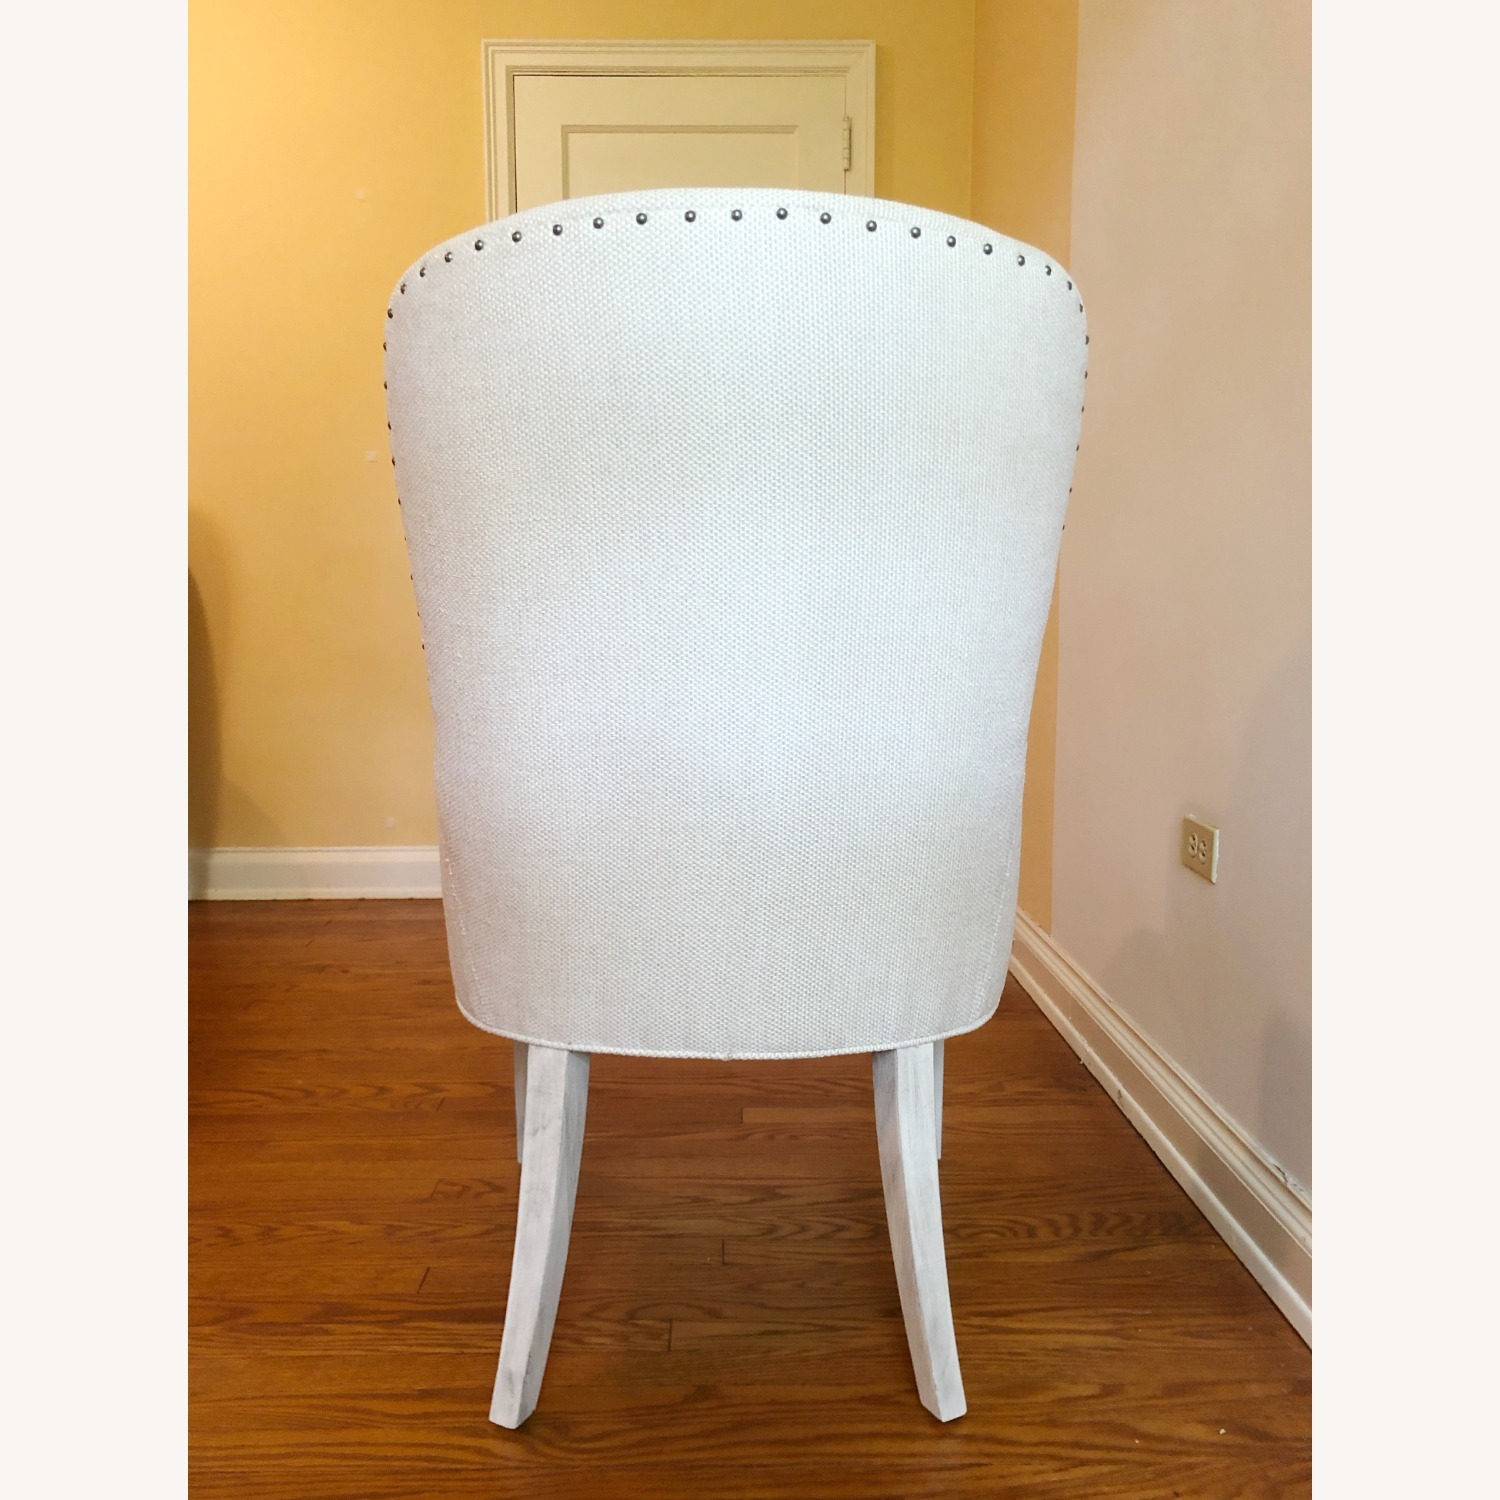 Oyster Bay Baxter Upholstered Arm Chair - image-3